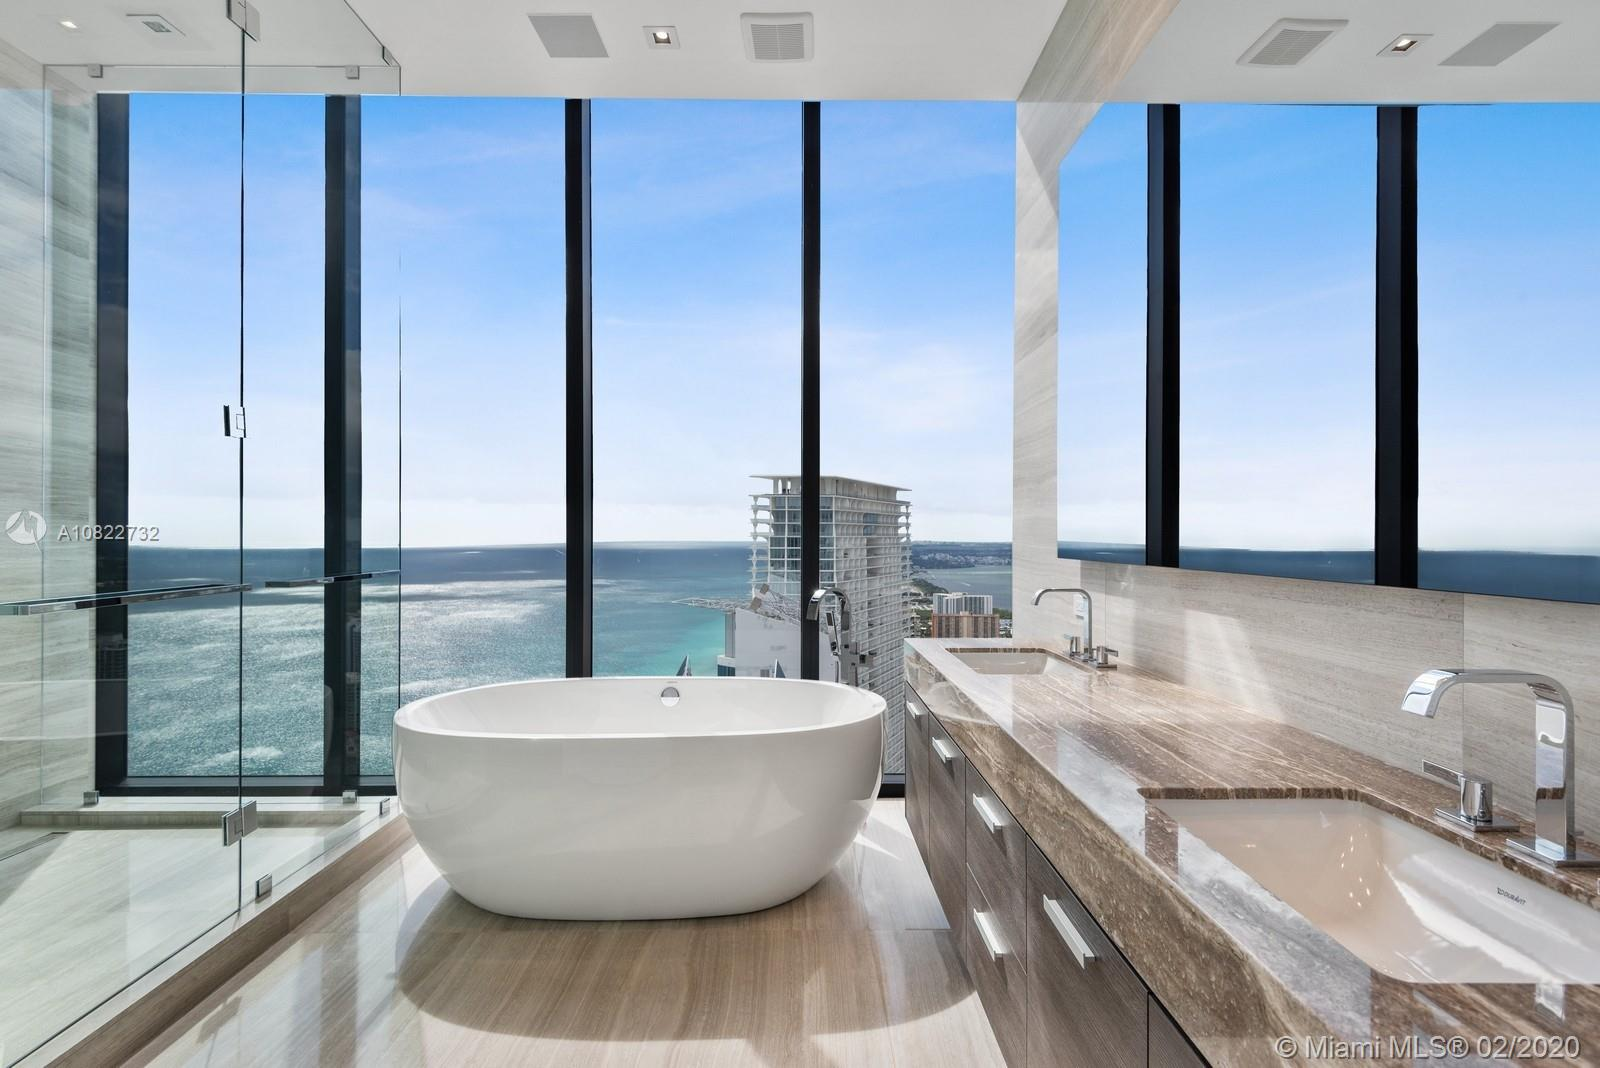 Welcome to a truly unique Boutique Residence of MUSE.  High above any neighboring buildings, you may find yourself living in A One-of-a-Kind, Luxury Smart Home on the 47th Fl.  Which offers you an unobstructed Panoramic Ocean & Intracoastal views from every room.  This 2BR +Den, that can be converted into a 3RD BR, boasts 3 Full Baths.  You will find exquisite marble flooring throughout the unit, surrounded by wall of windows along with 12ft. ceilings.  Top-of-the-line appliances such as WOLF & Sub-Zero and fixtures Dornbracht & Duravit makes this a remarkable home.  Outdoors living consists of a 60ft wide and 36ft deep balcony with a Summer Kitchen for entertaining year round.  Enjoy the finest Amenities such as the Infinity Pool & Lounge, Spa, Gym, Beach Service & Resort like Concierge.